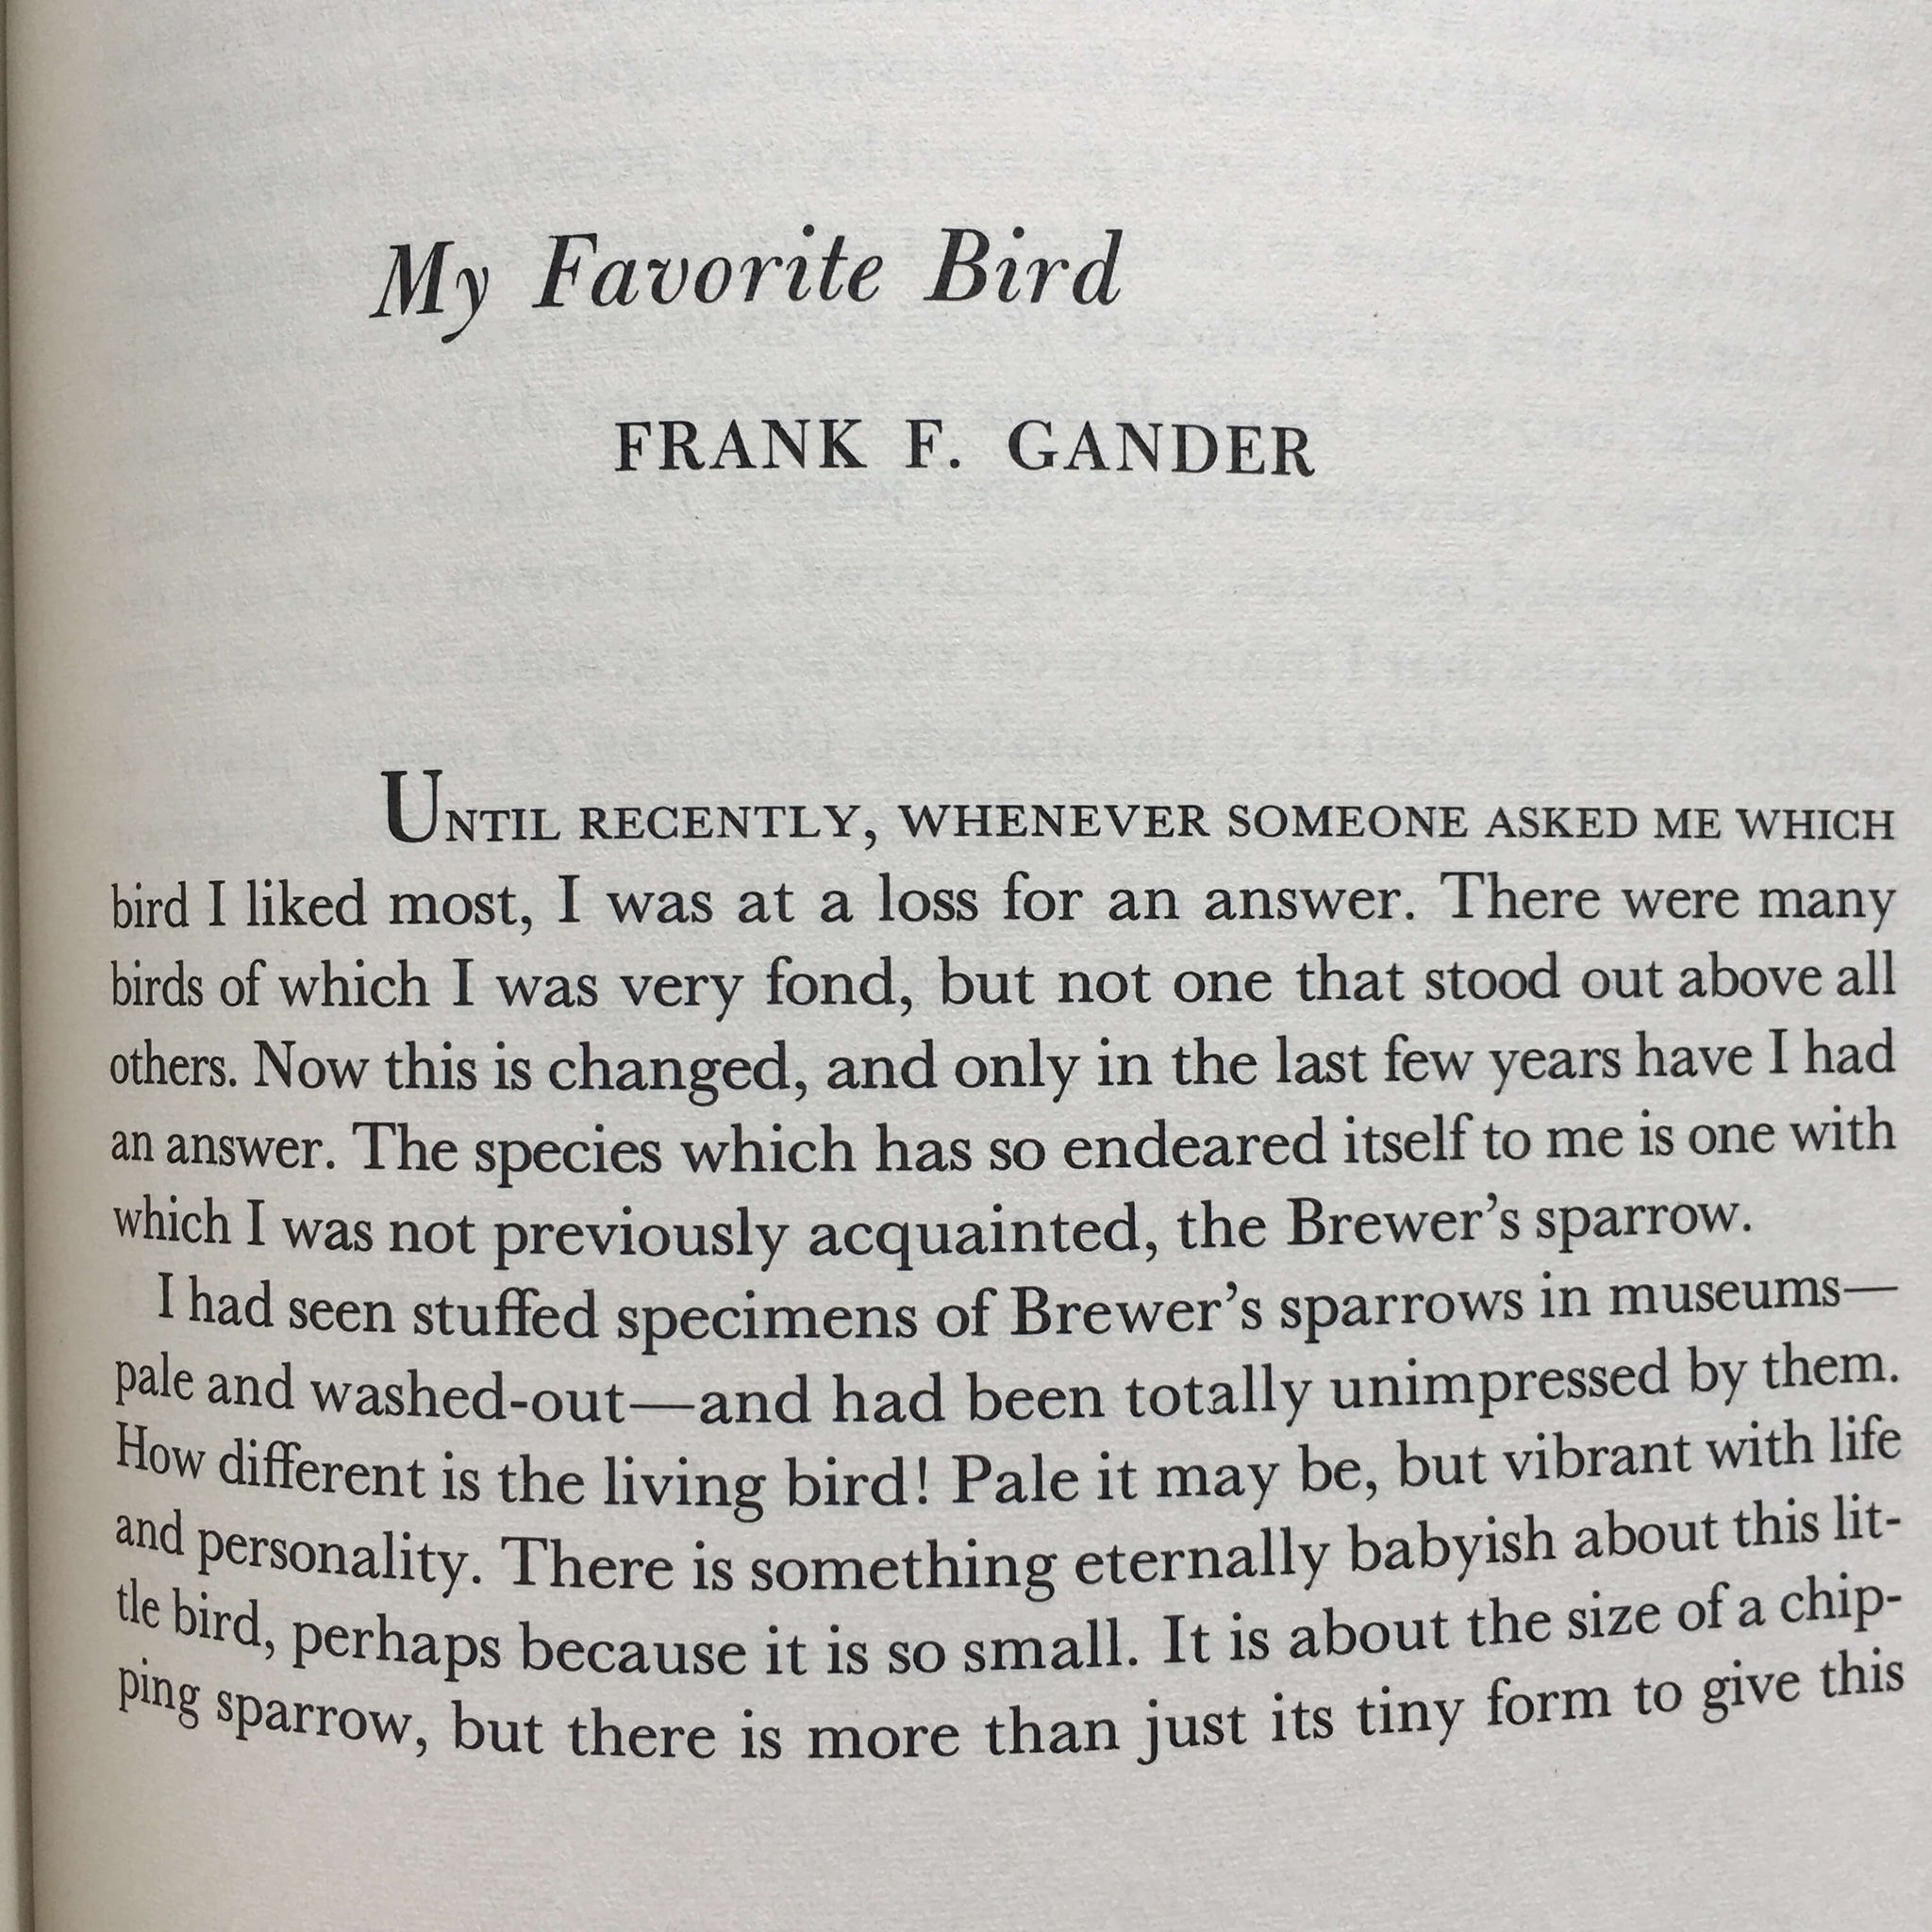 My Favorite Bird Frank F. Cander